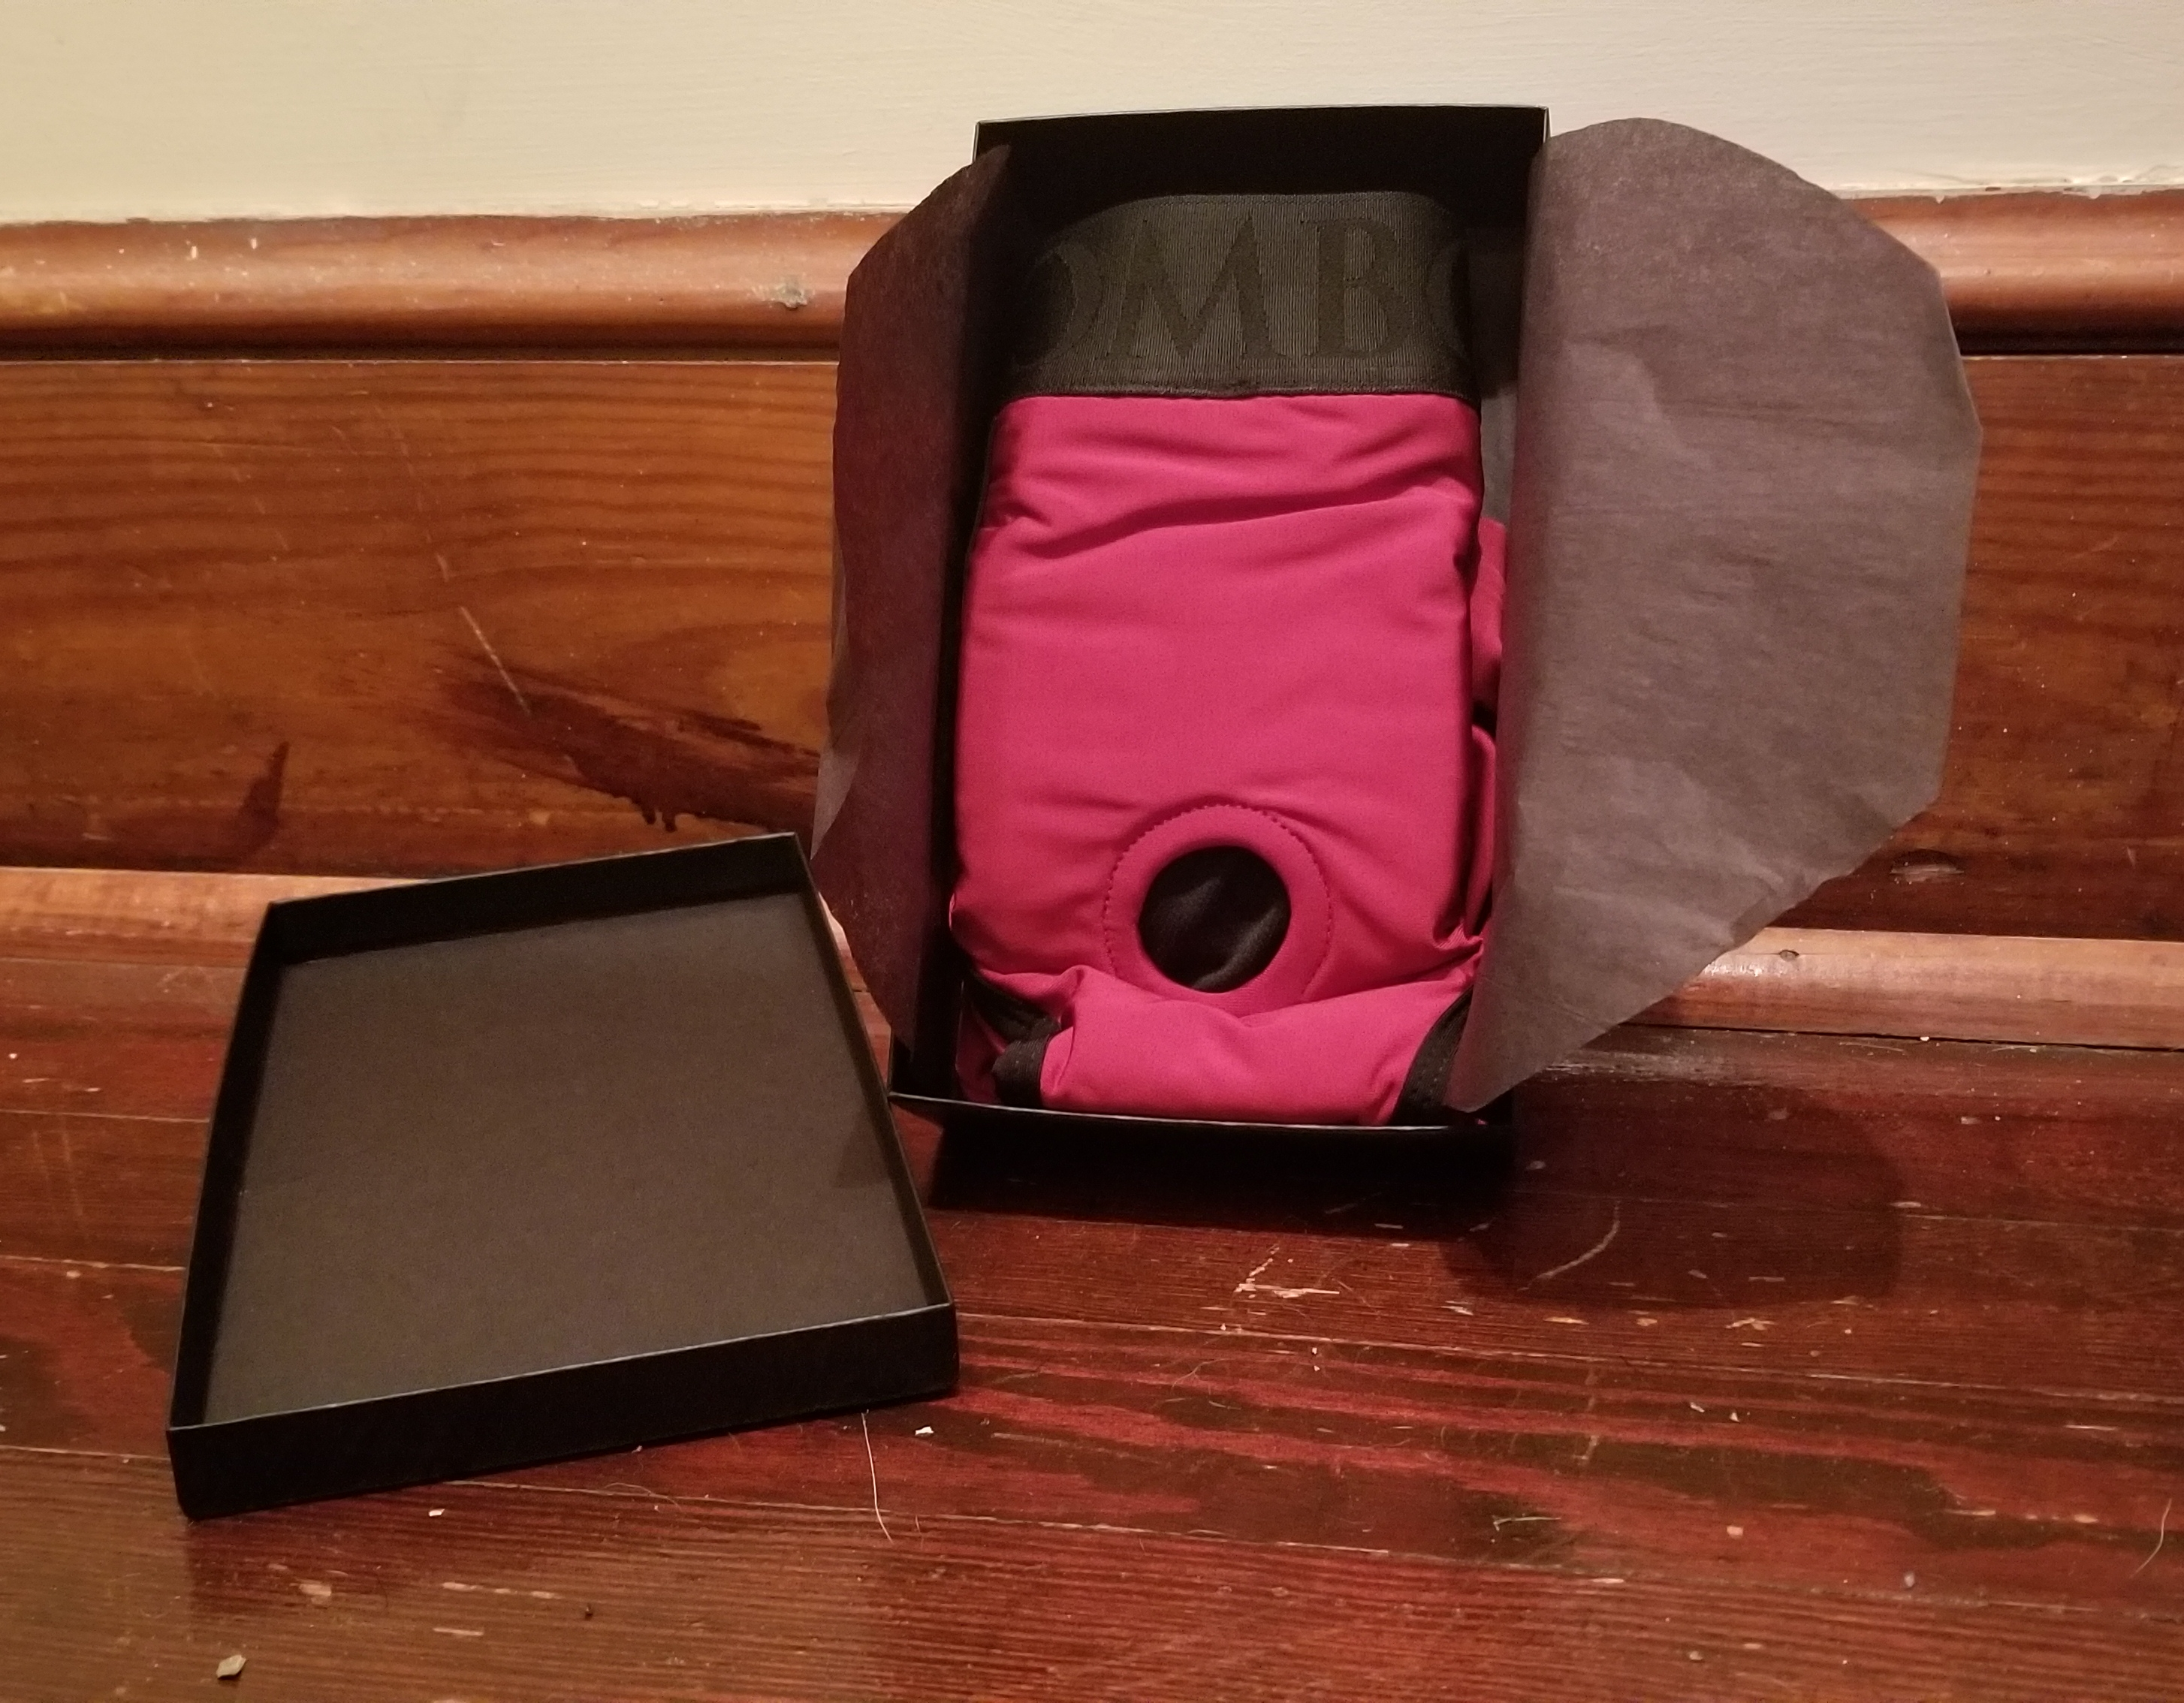 The SpareParts box is open to reveal the front of the Tomboi. It's wrapped with tissue paper. The focus of the photo is the o-ring, which is about an inch in diameter in the center of the Tomboi.